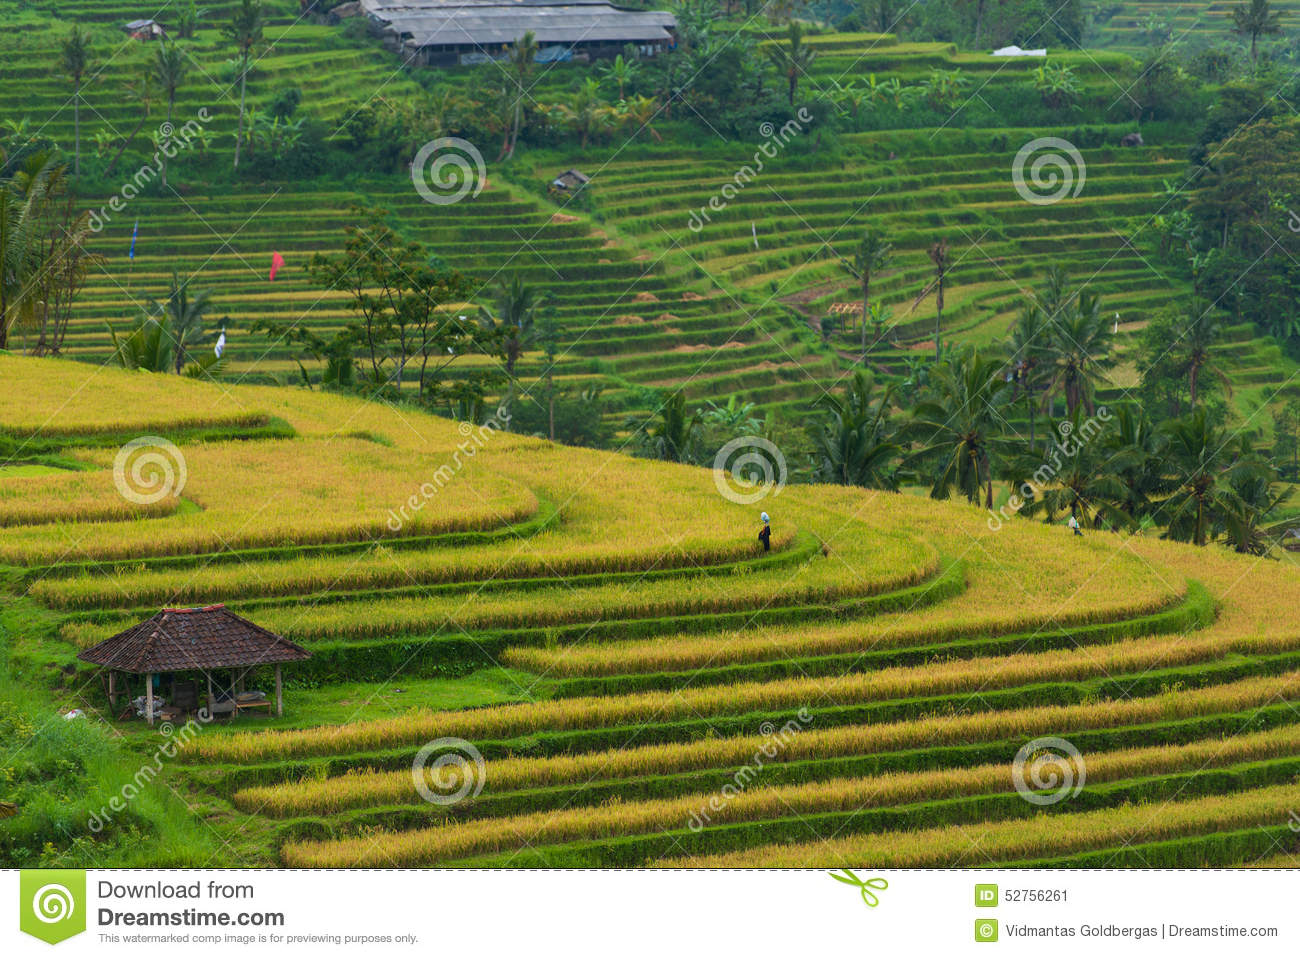 Indonesian rice field.